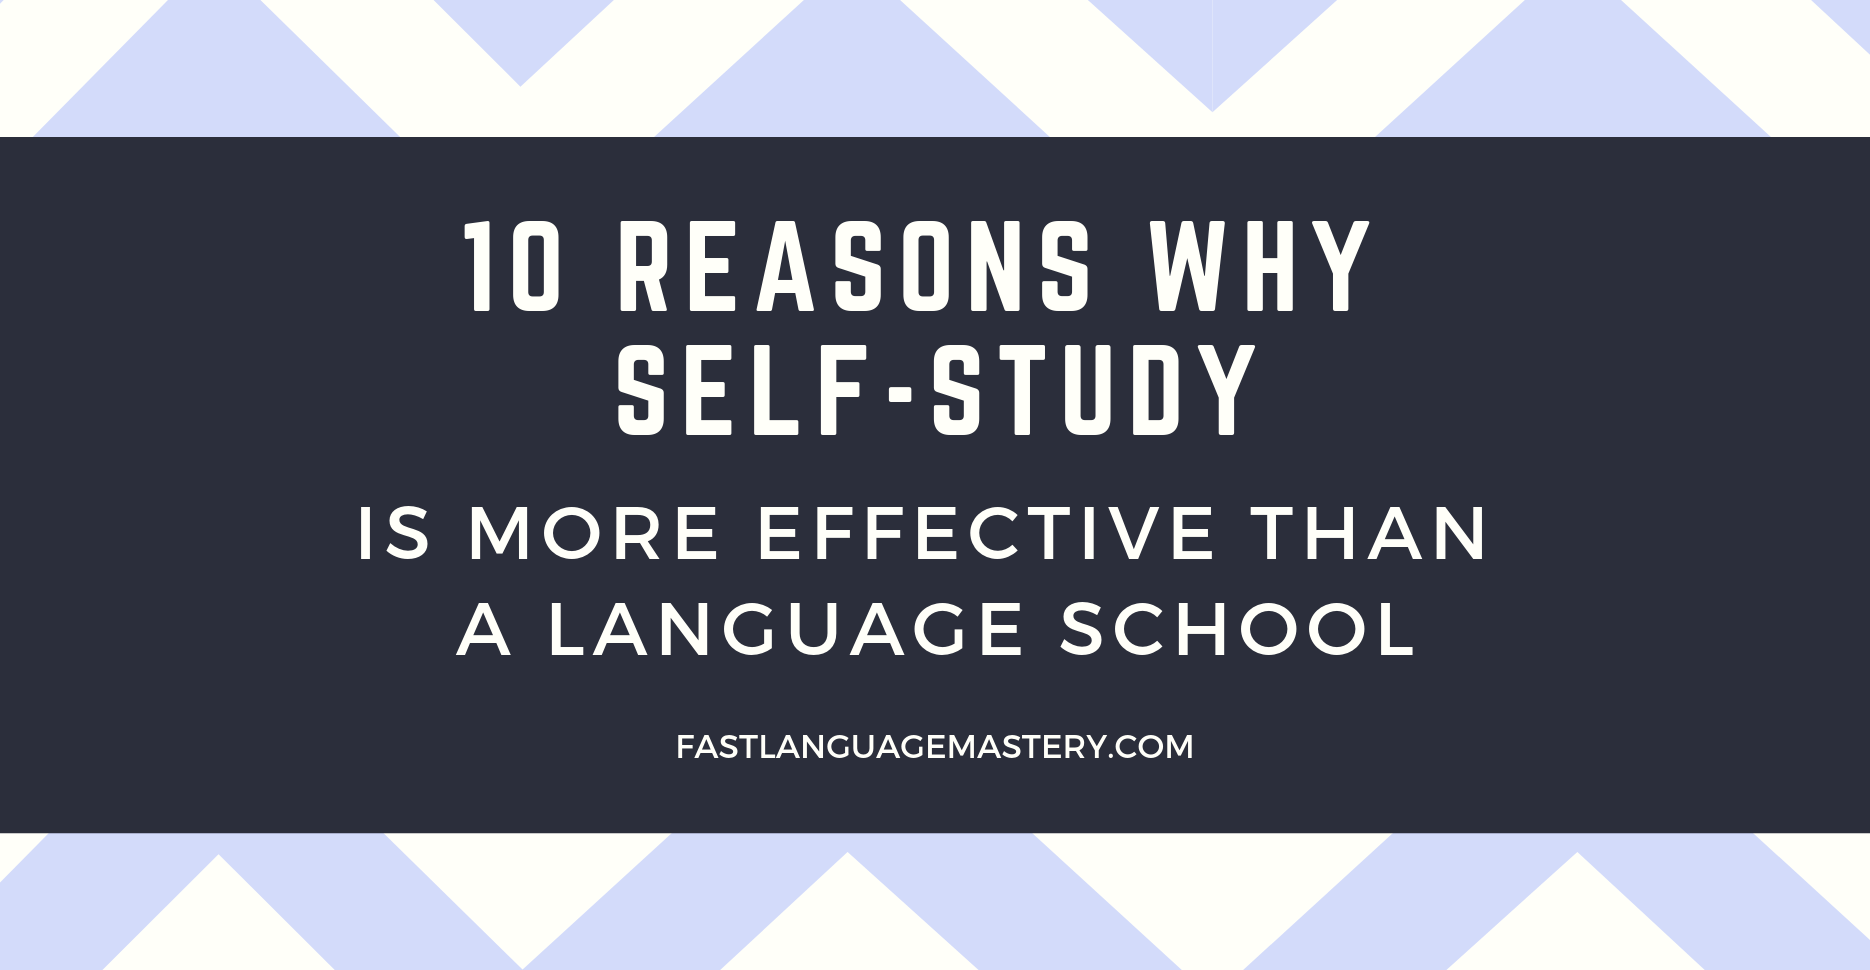 10 reasons why self-study of a language is better than a language school